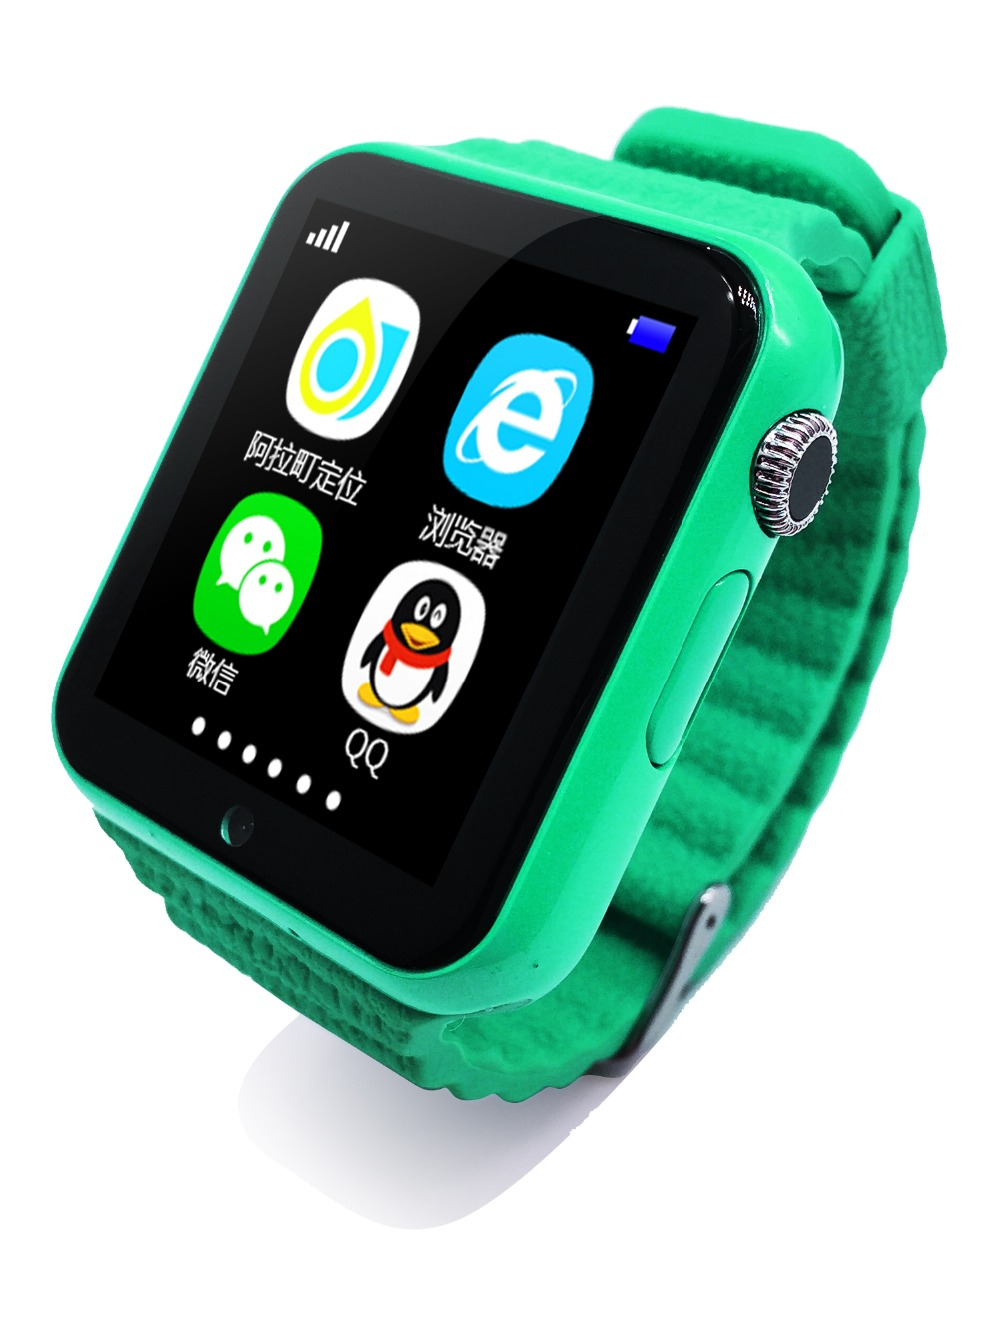 EnohpLX Children Security Anti-lost GPS Tracker Smart Watch V7K 1.54 Screen Kid SOS Emergency For iPhone and Android